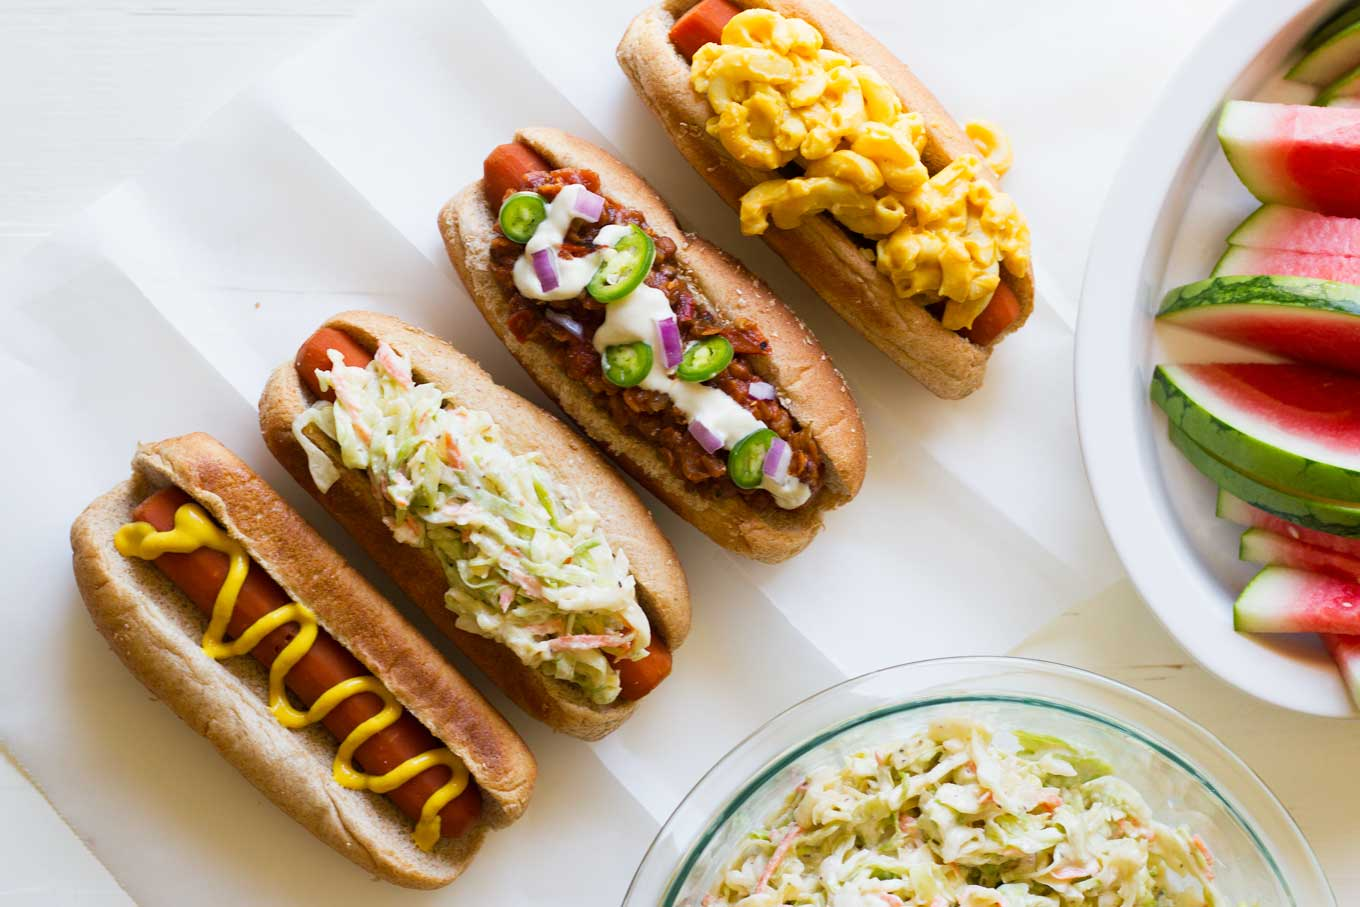 Carrot dogs topped with mustard, coleslaw, vegan chili, and vegan mac and cheese | Easy Carrot Dogs | Plant-based | Vegan | Recipe | http://www.eatwithinyourmeans.com/